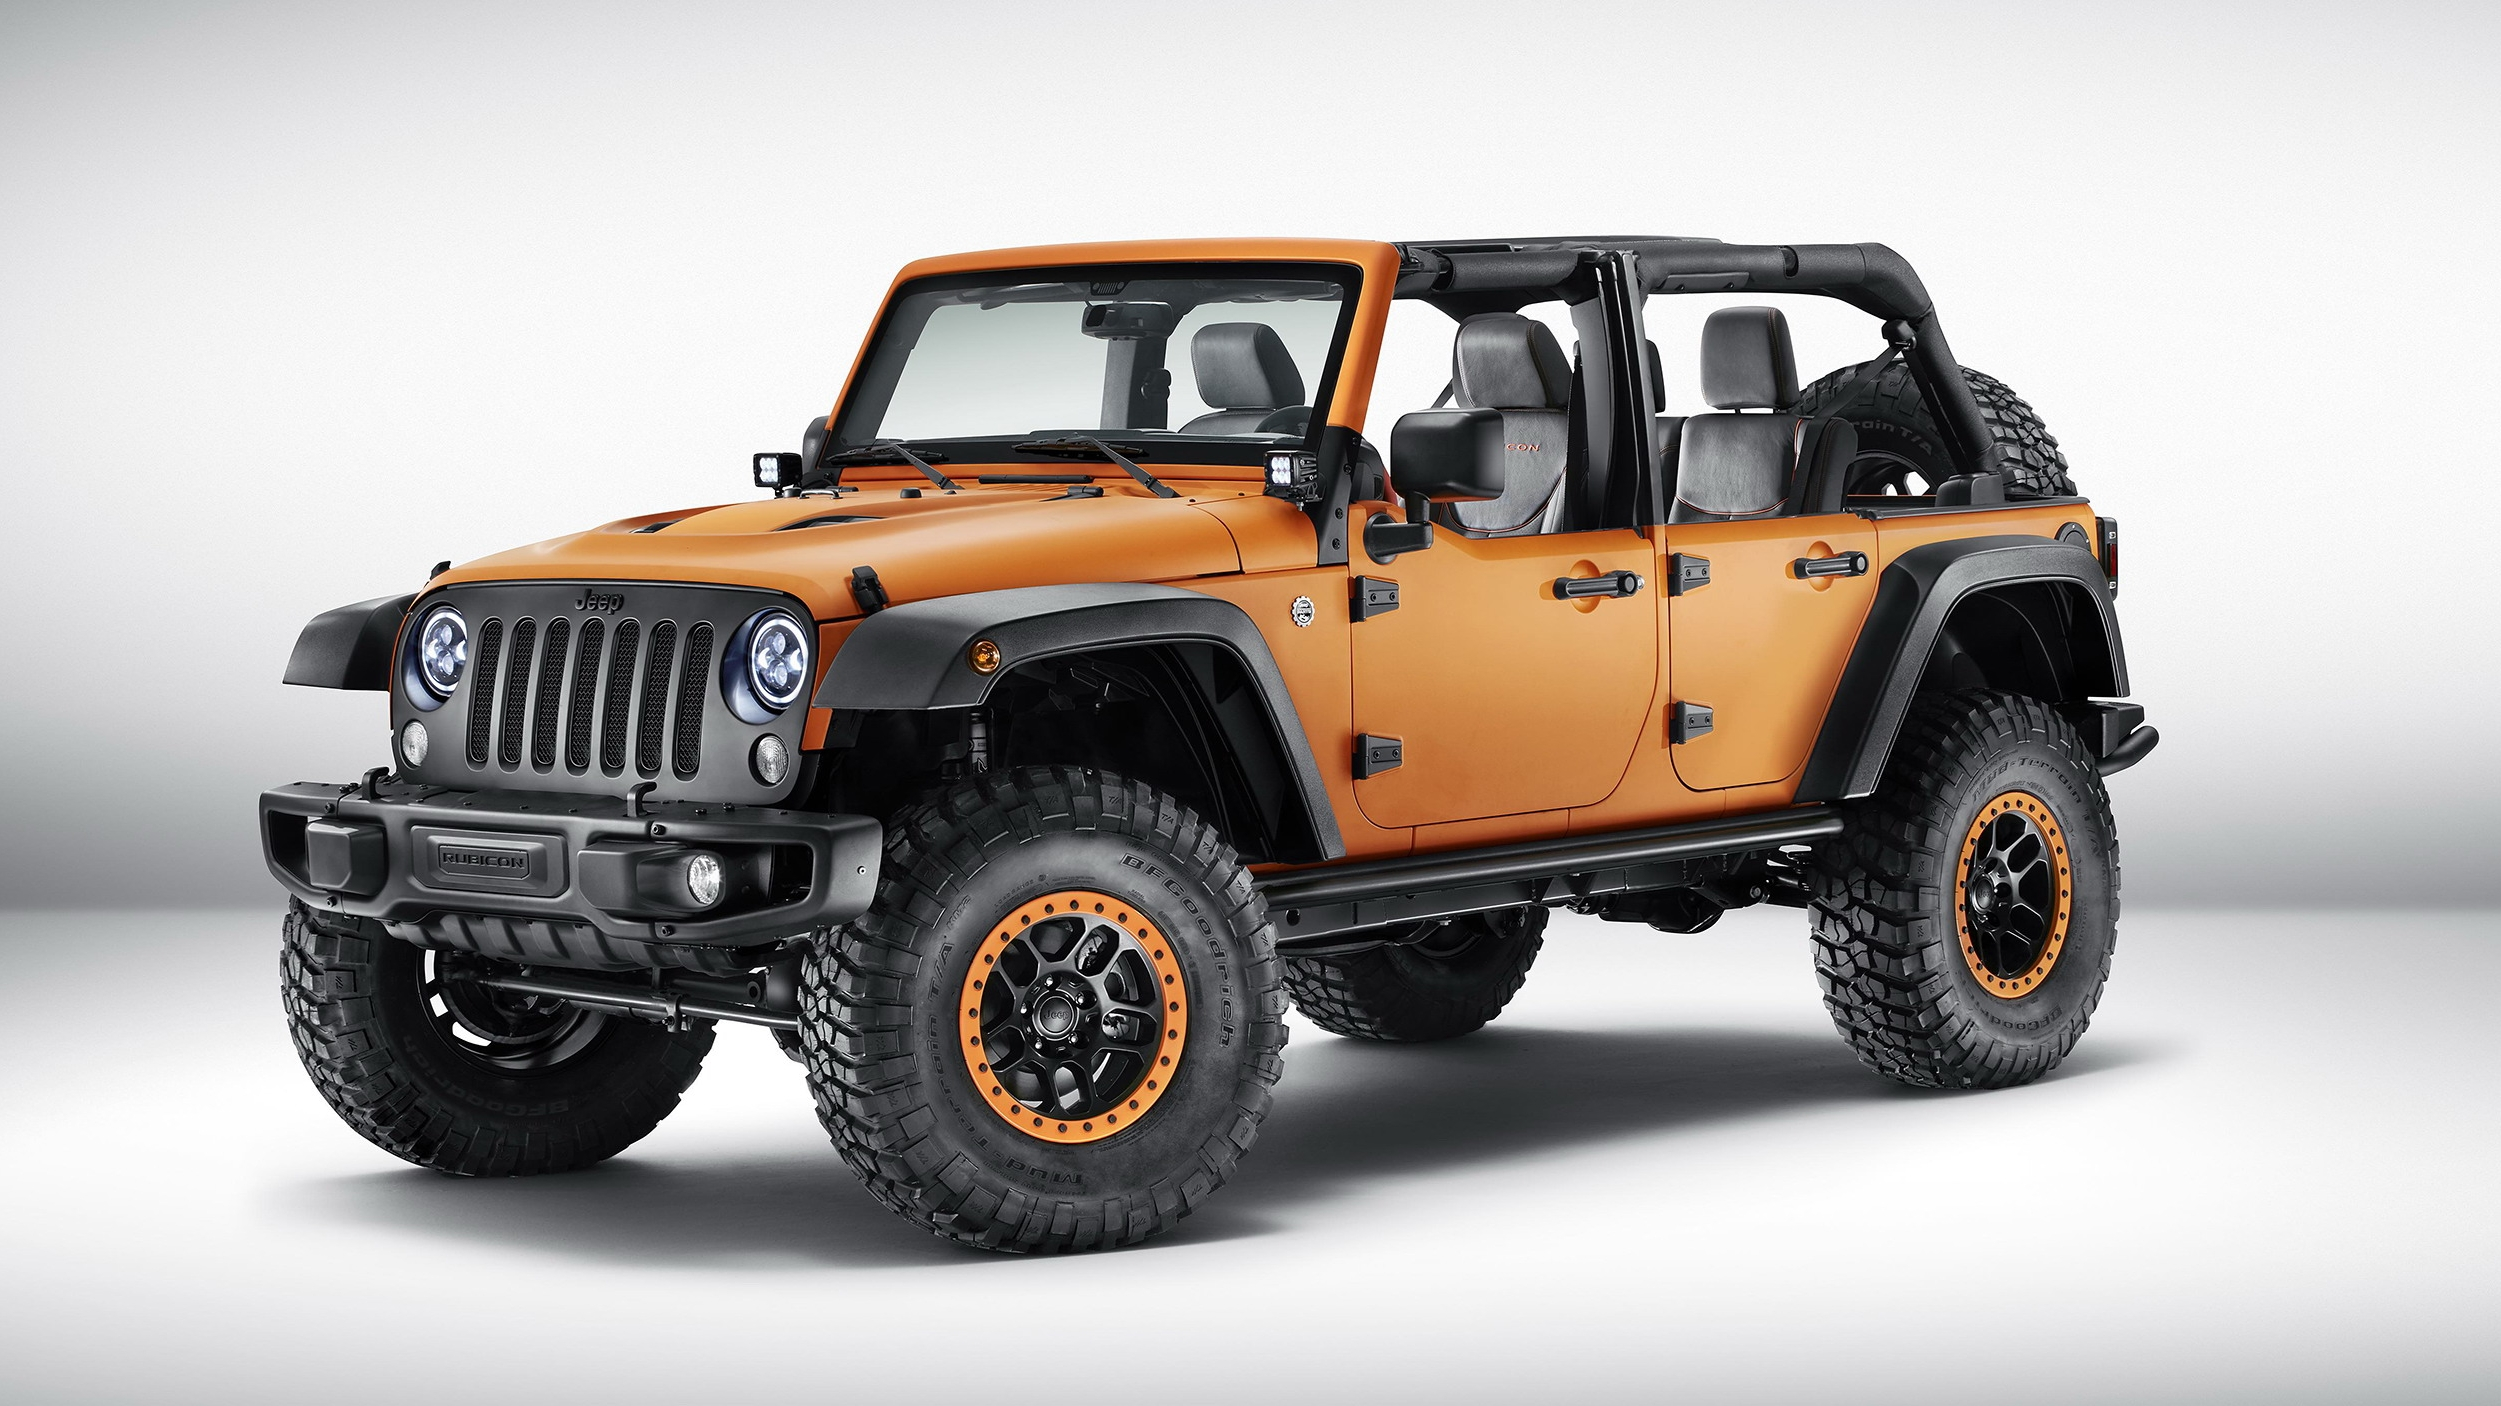 2015 jeep wrangler rubicon sunriser review - gallery - top speed